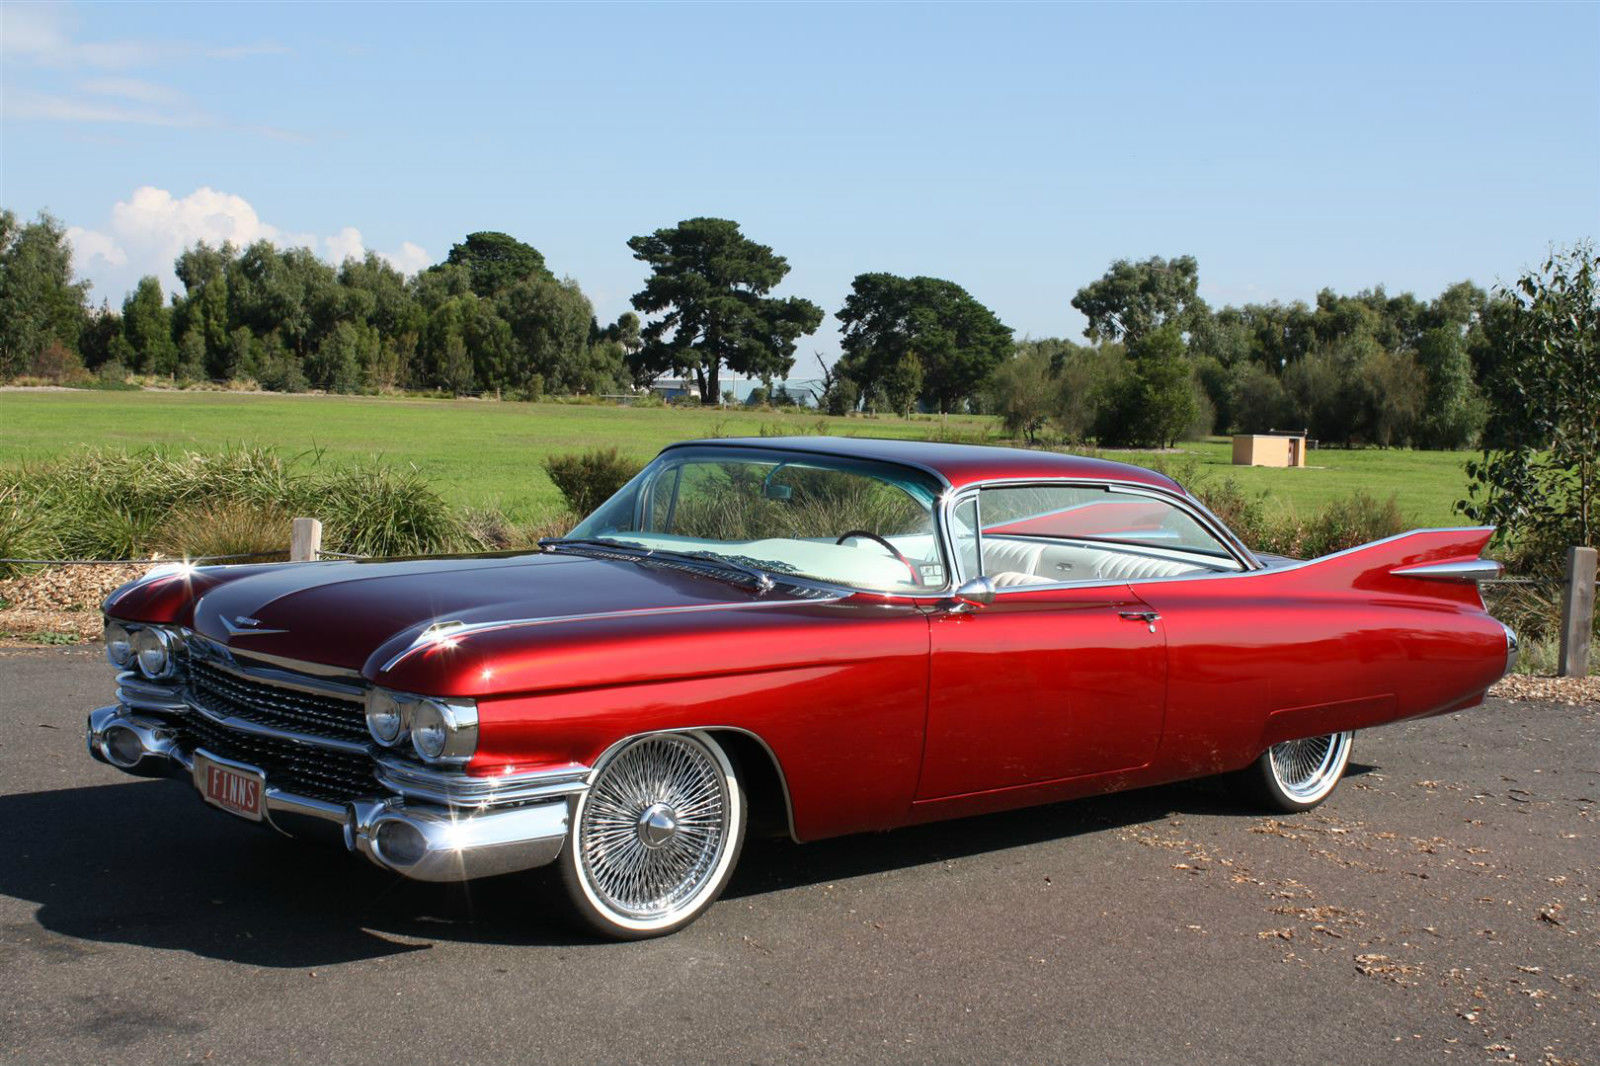 1959 cadillac series 62 coupe deville candy red custom. Black Bedroom Furniture Sets. Home Design Ideas